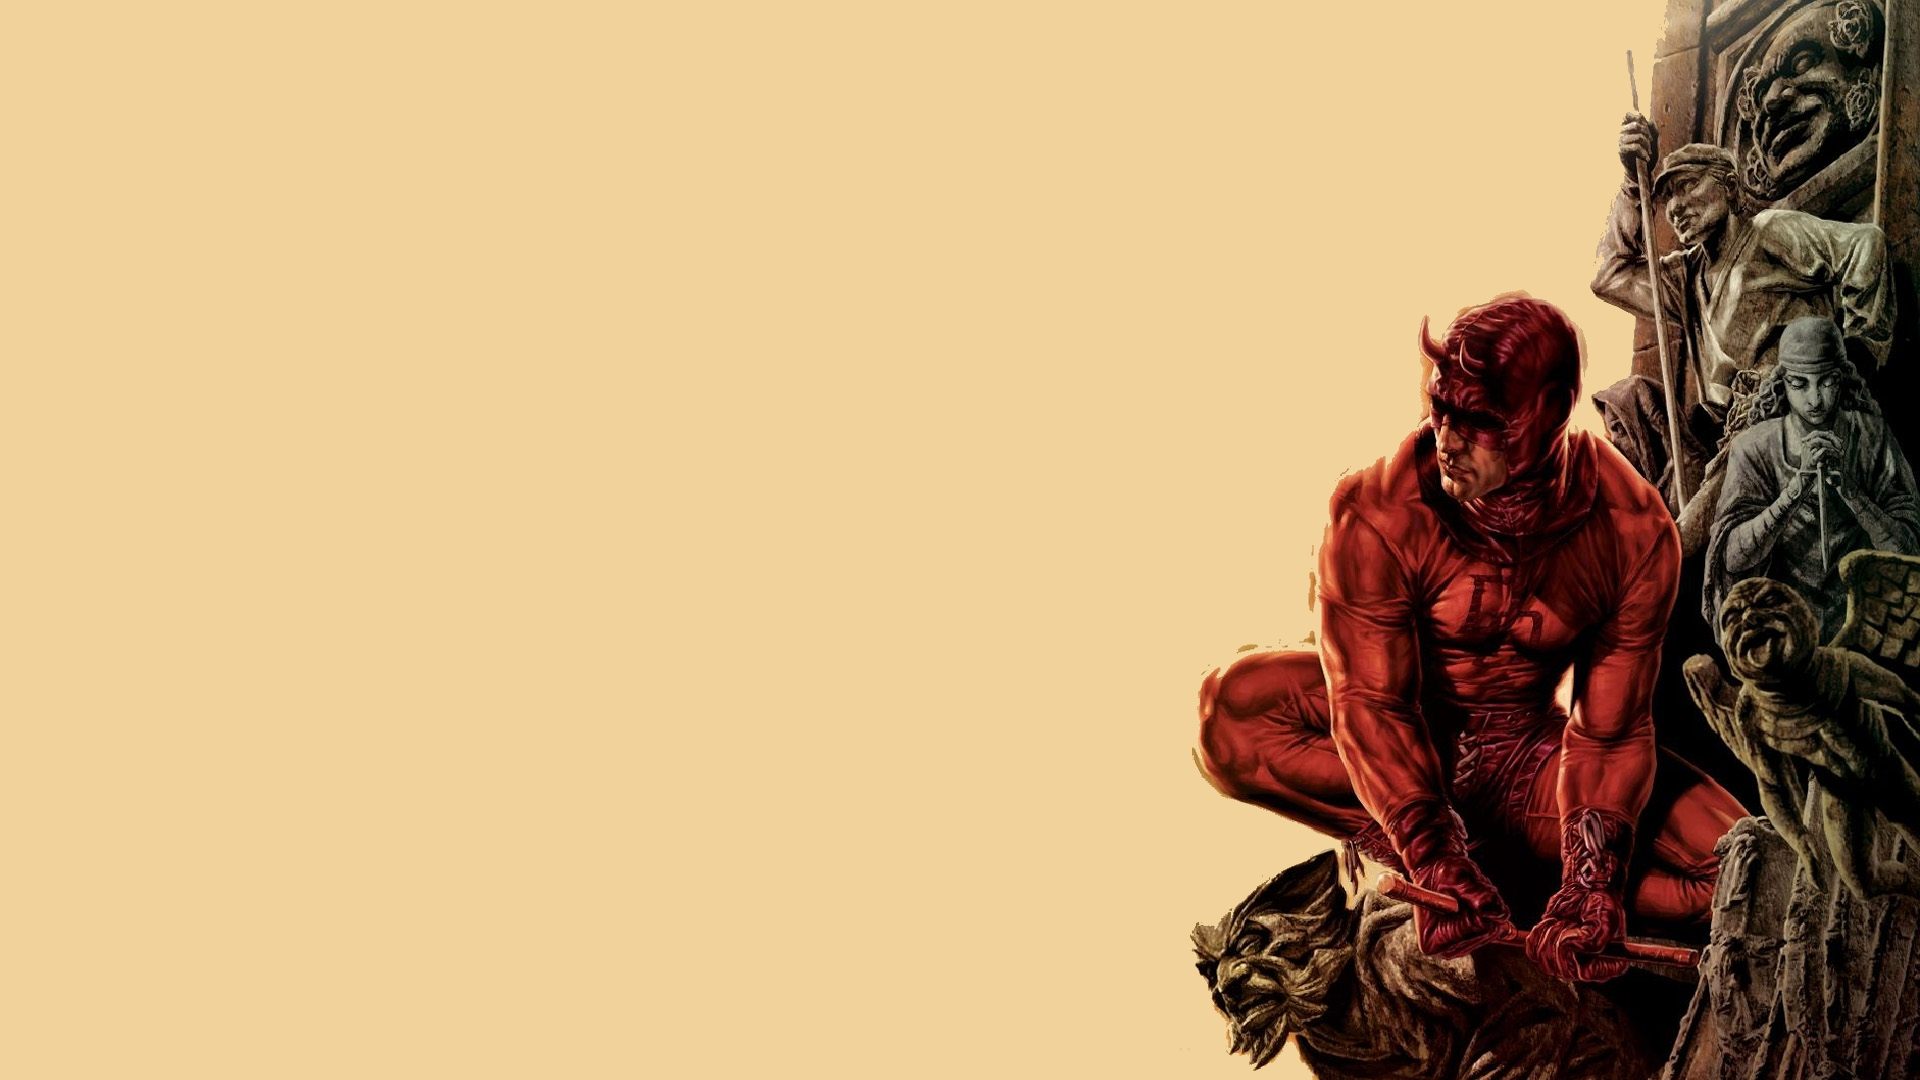 Daredevil HD Wallpaper | Background Image | 1920x1080 | ID:473283 - Wallpaper Abyss